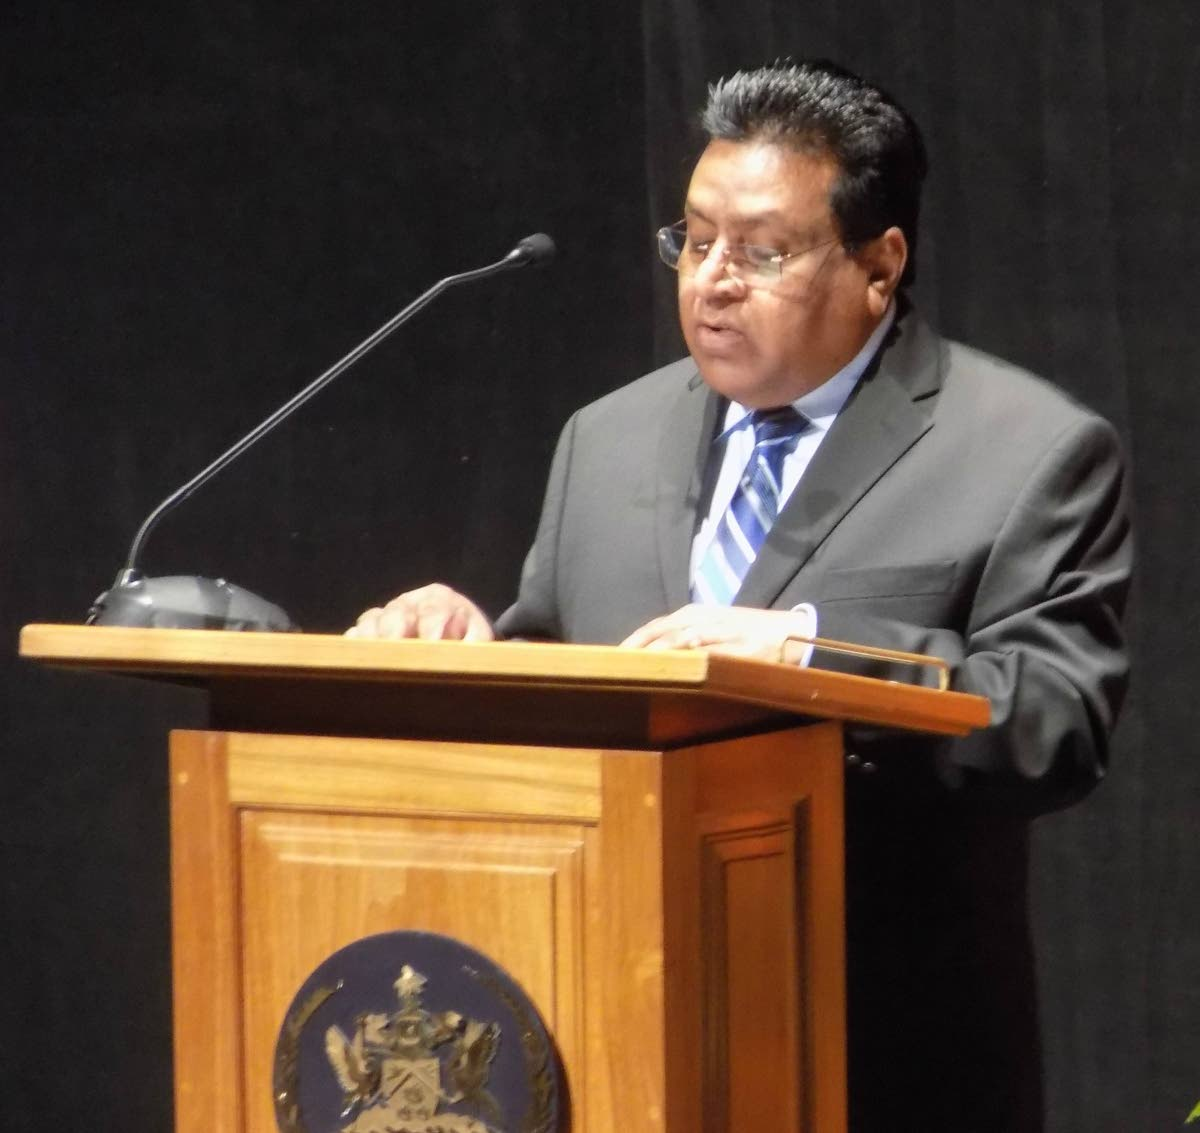 Chief Education Officer Harrilal Seecharan during a function at NAPA, Port of Spain in 2017. FILE PHOTO